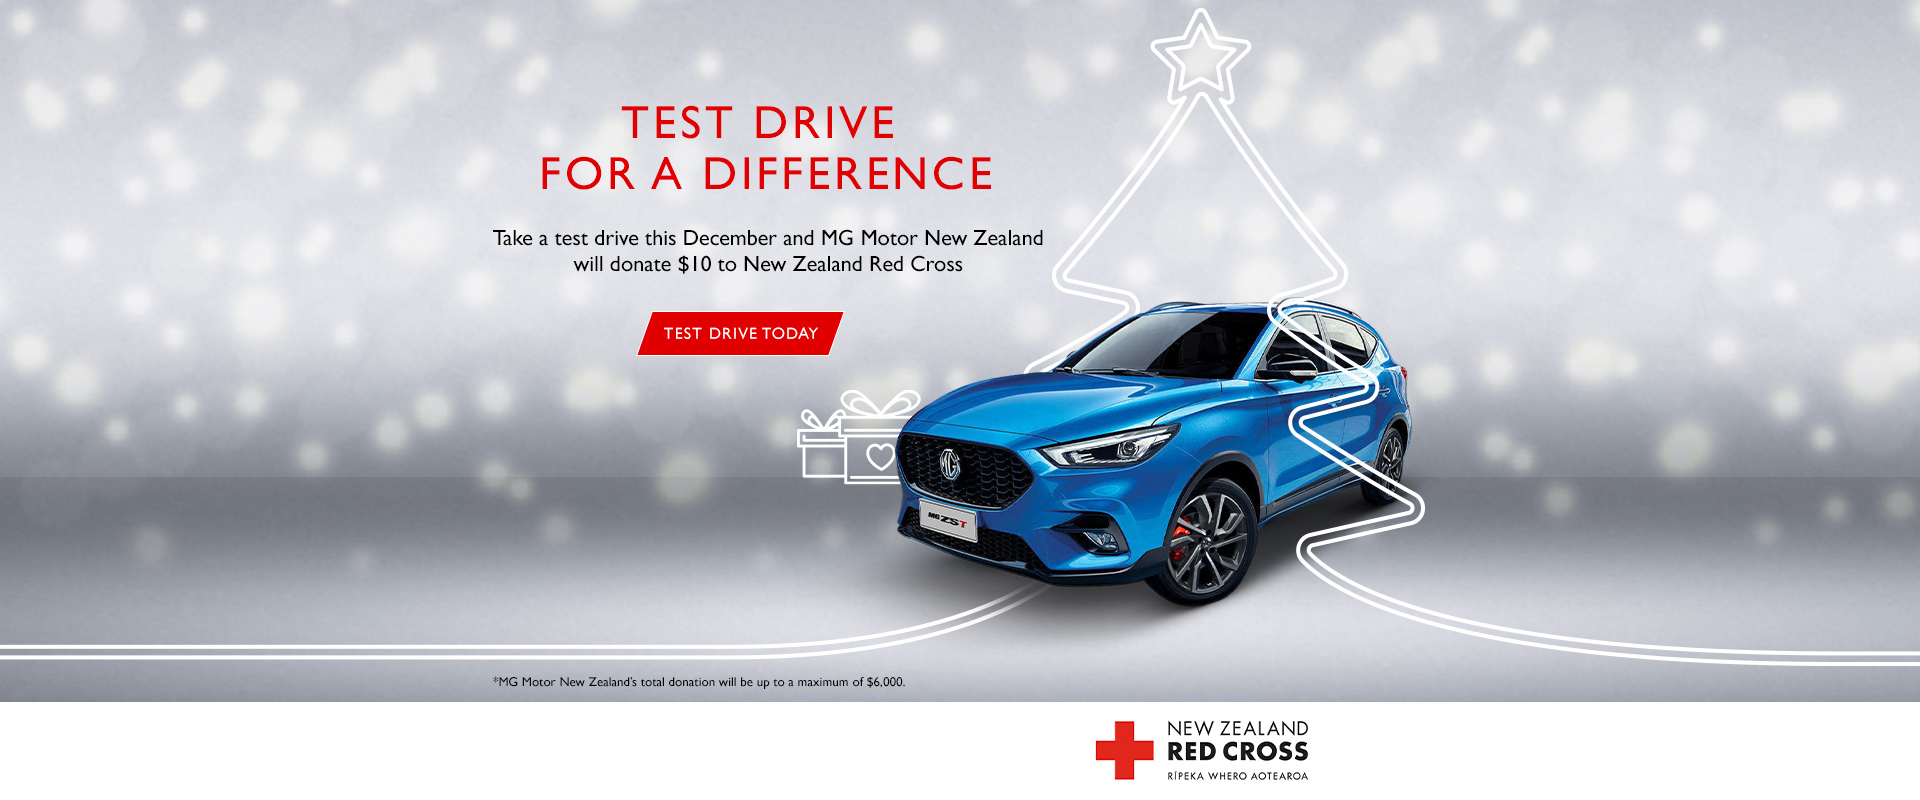 Test Drive for a Difference